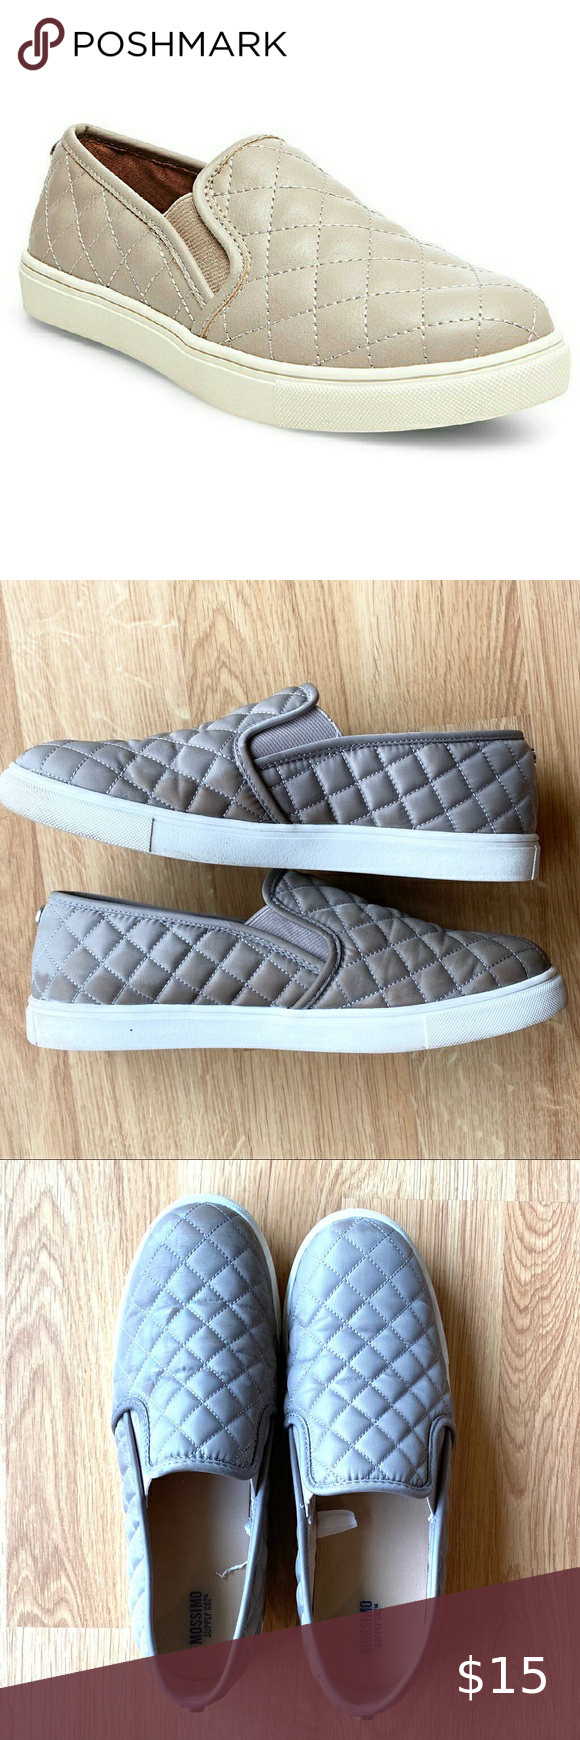 Mossimo Quilted Slip On Sneakers Tan